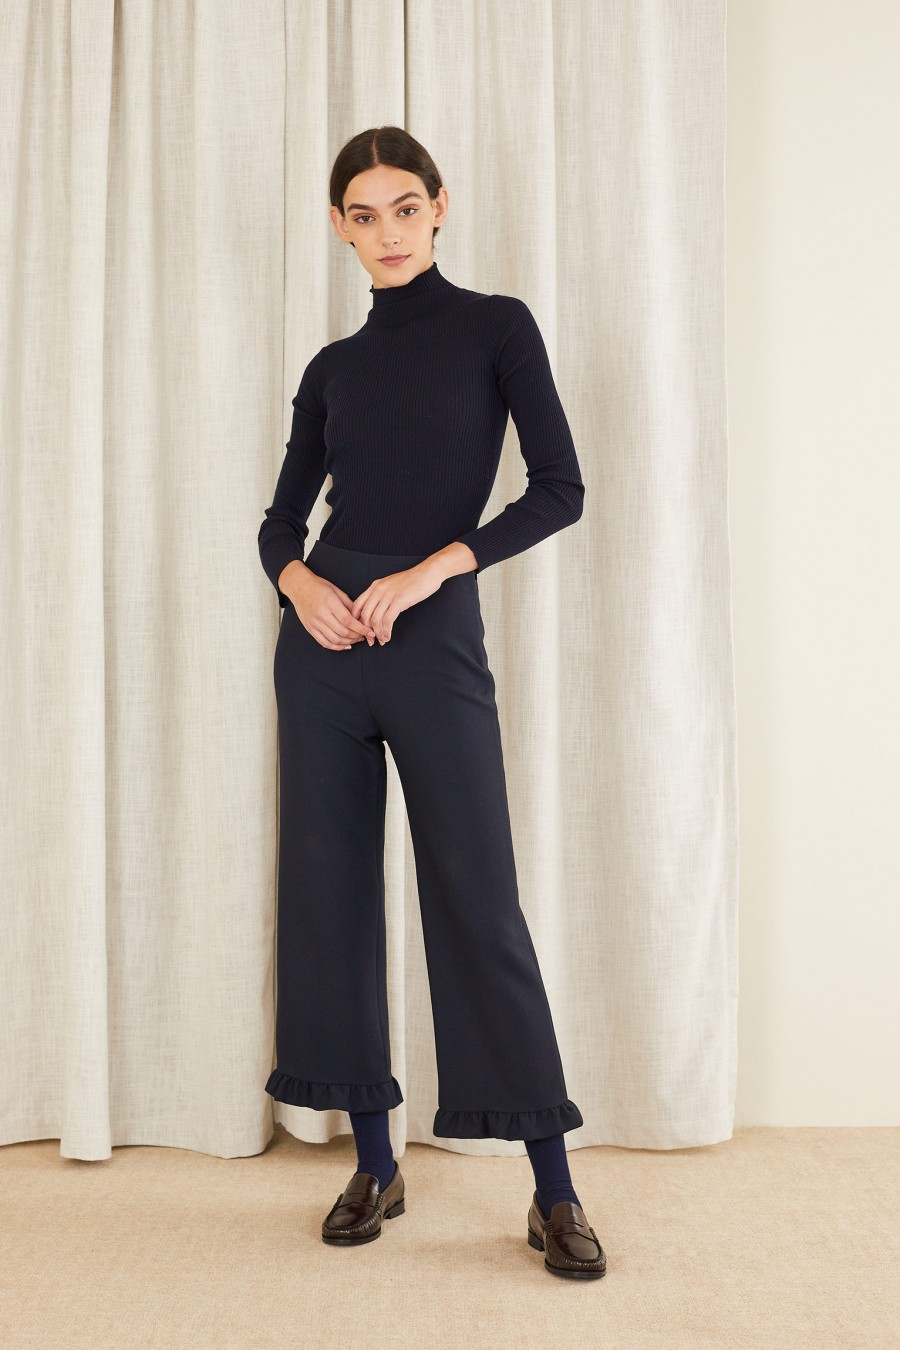 classy style with ruffle hem trousers